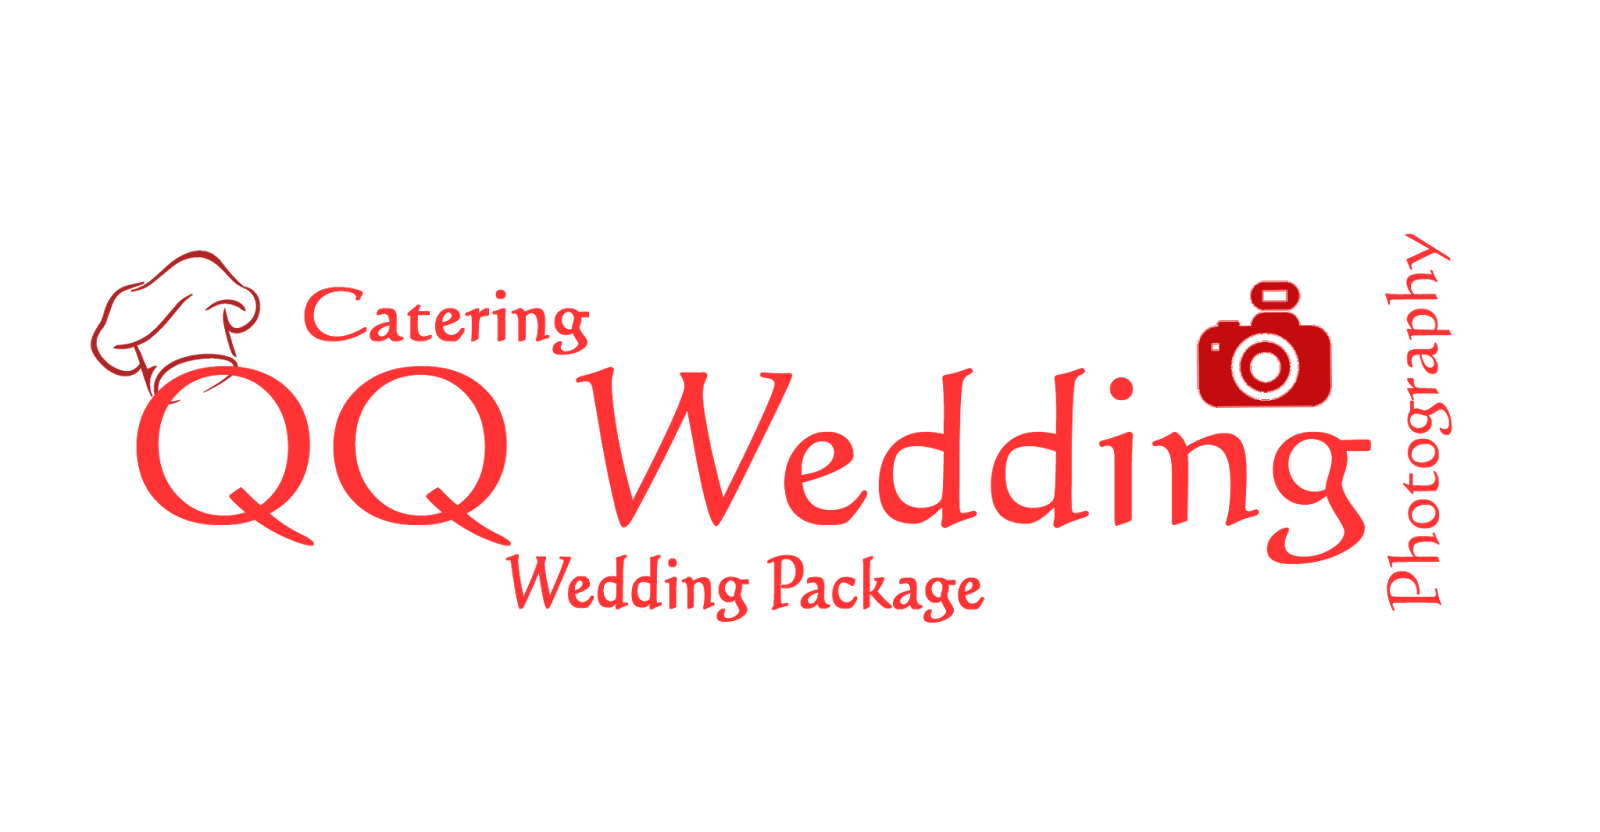 QQ Wedding